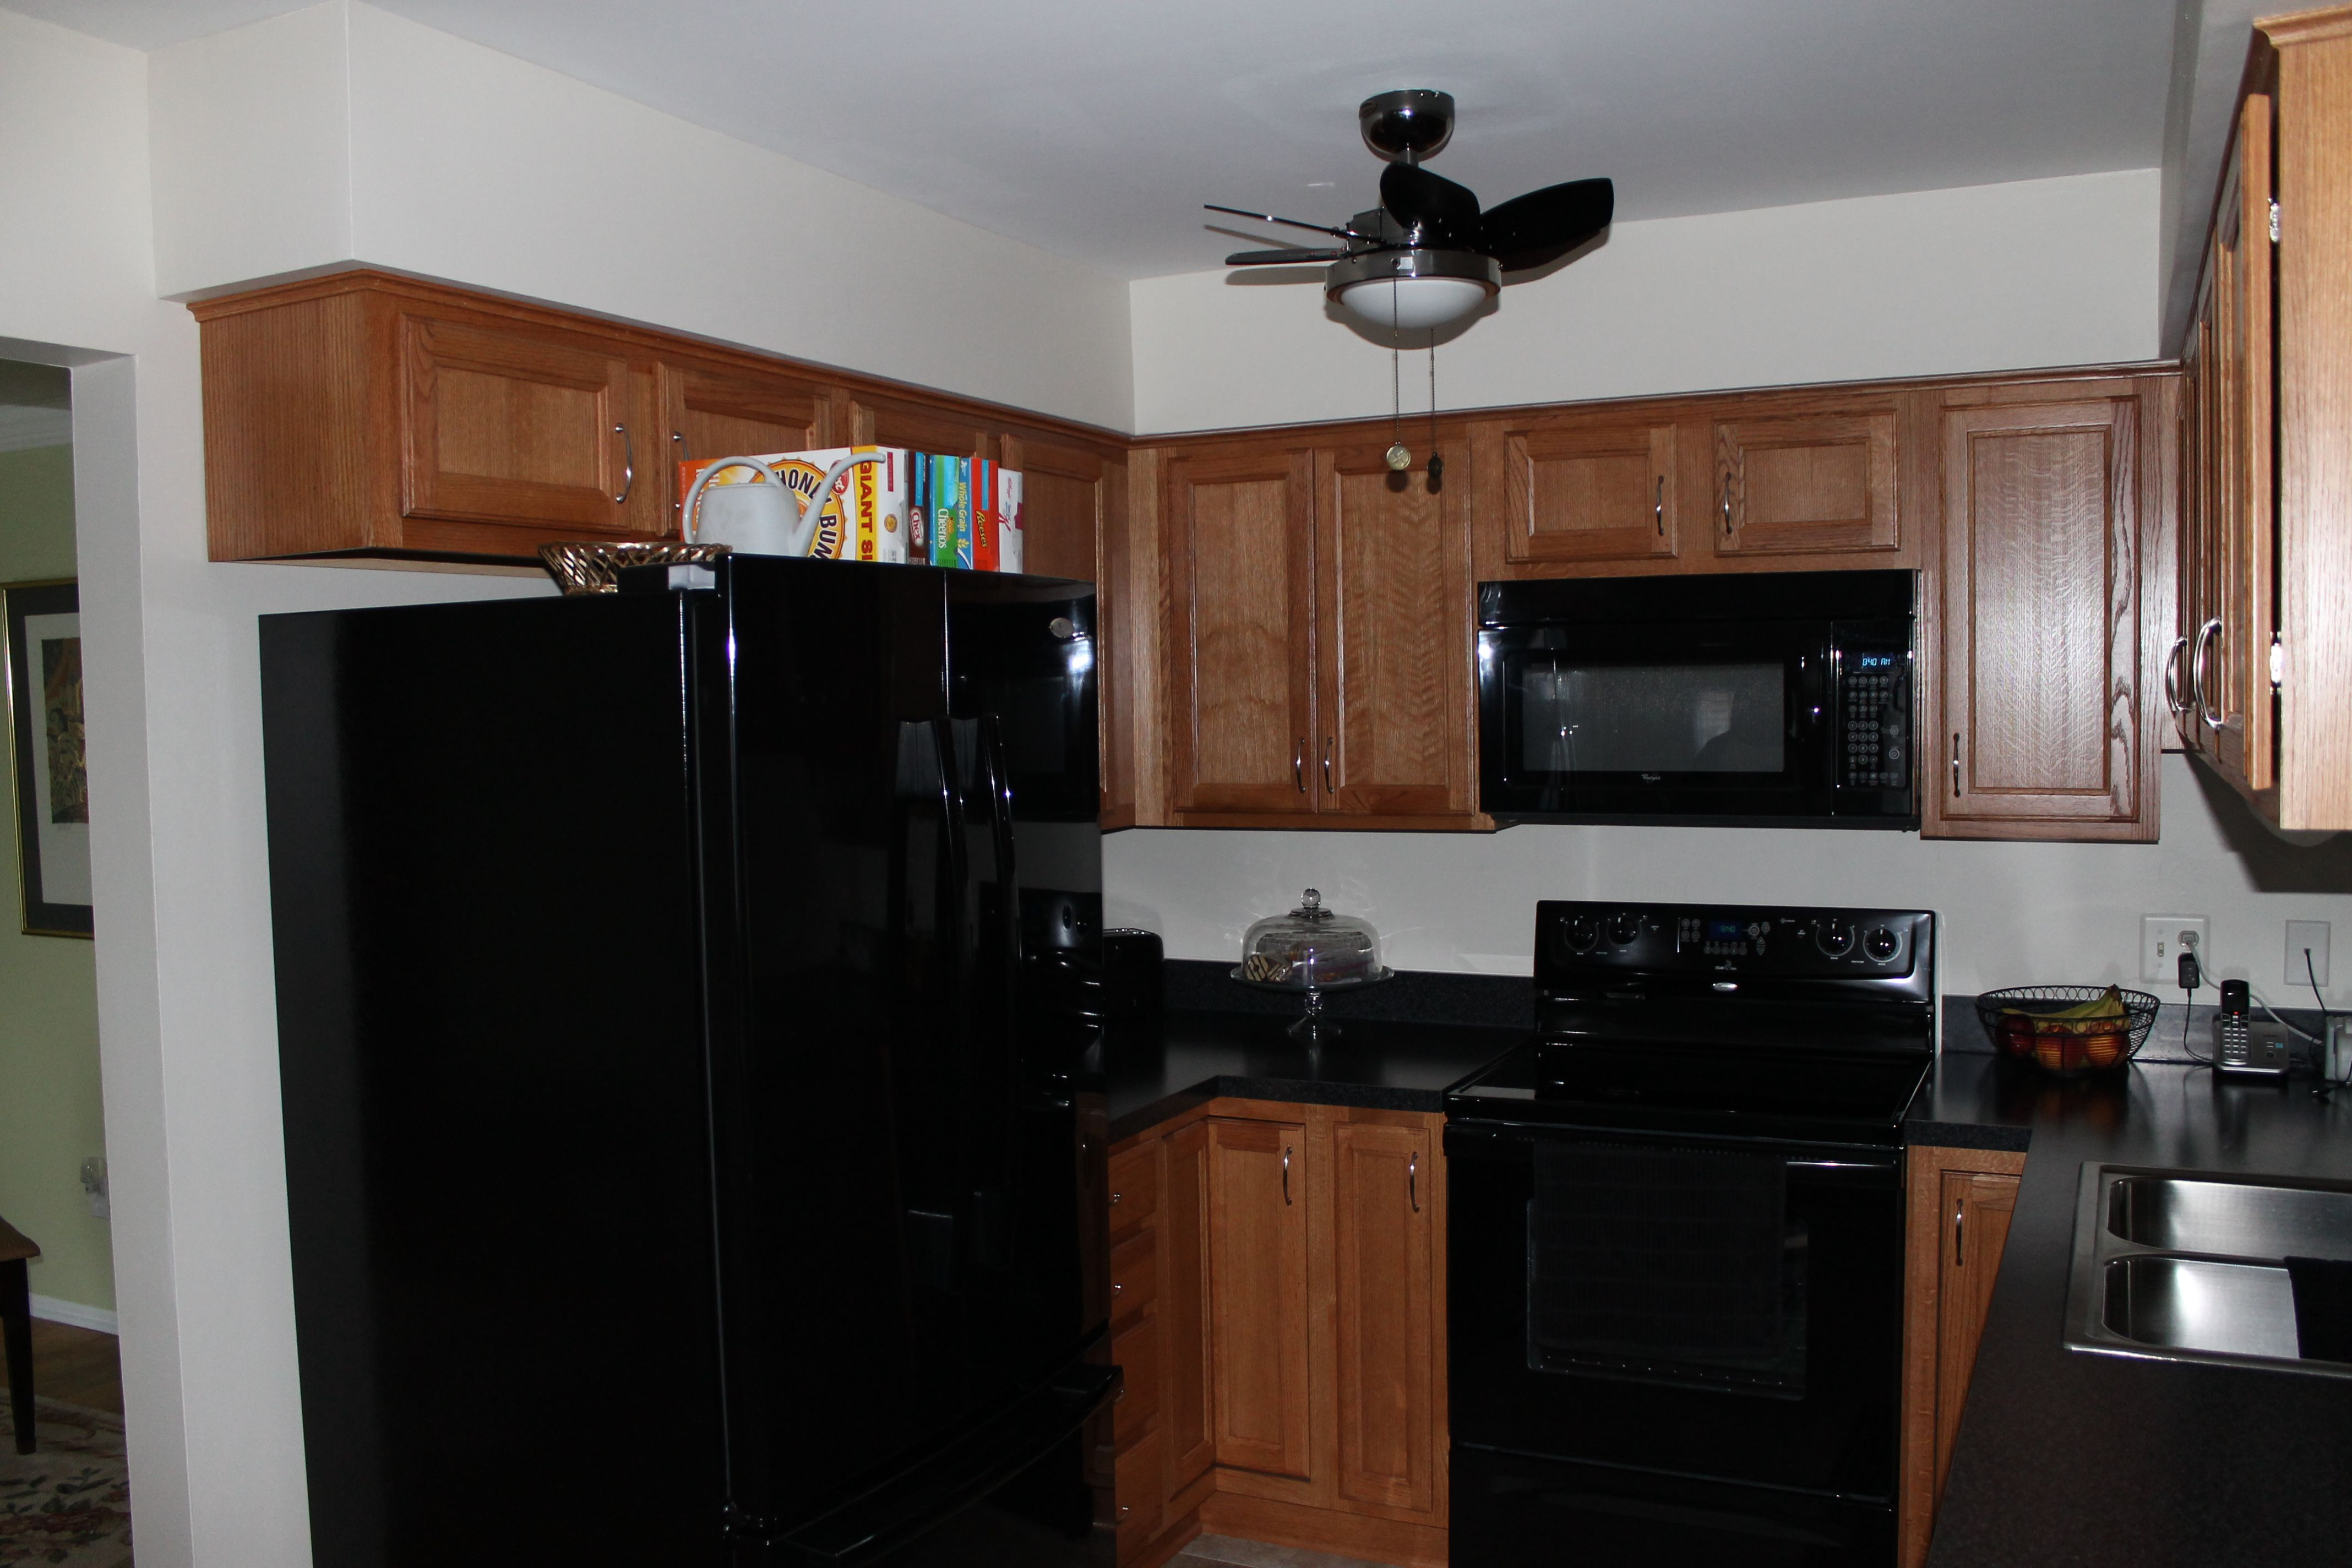 medium light shaker style cabinetry with black appliances and dark quartz countertop